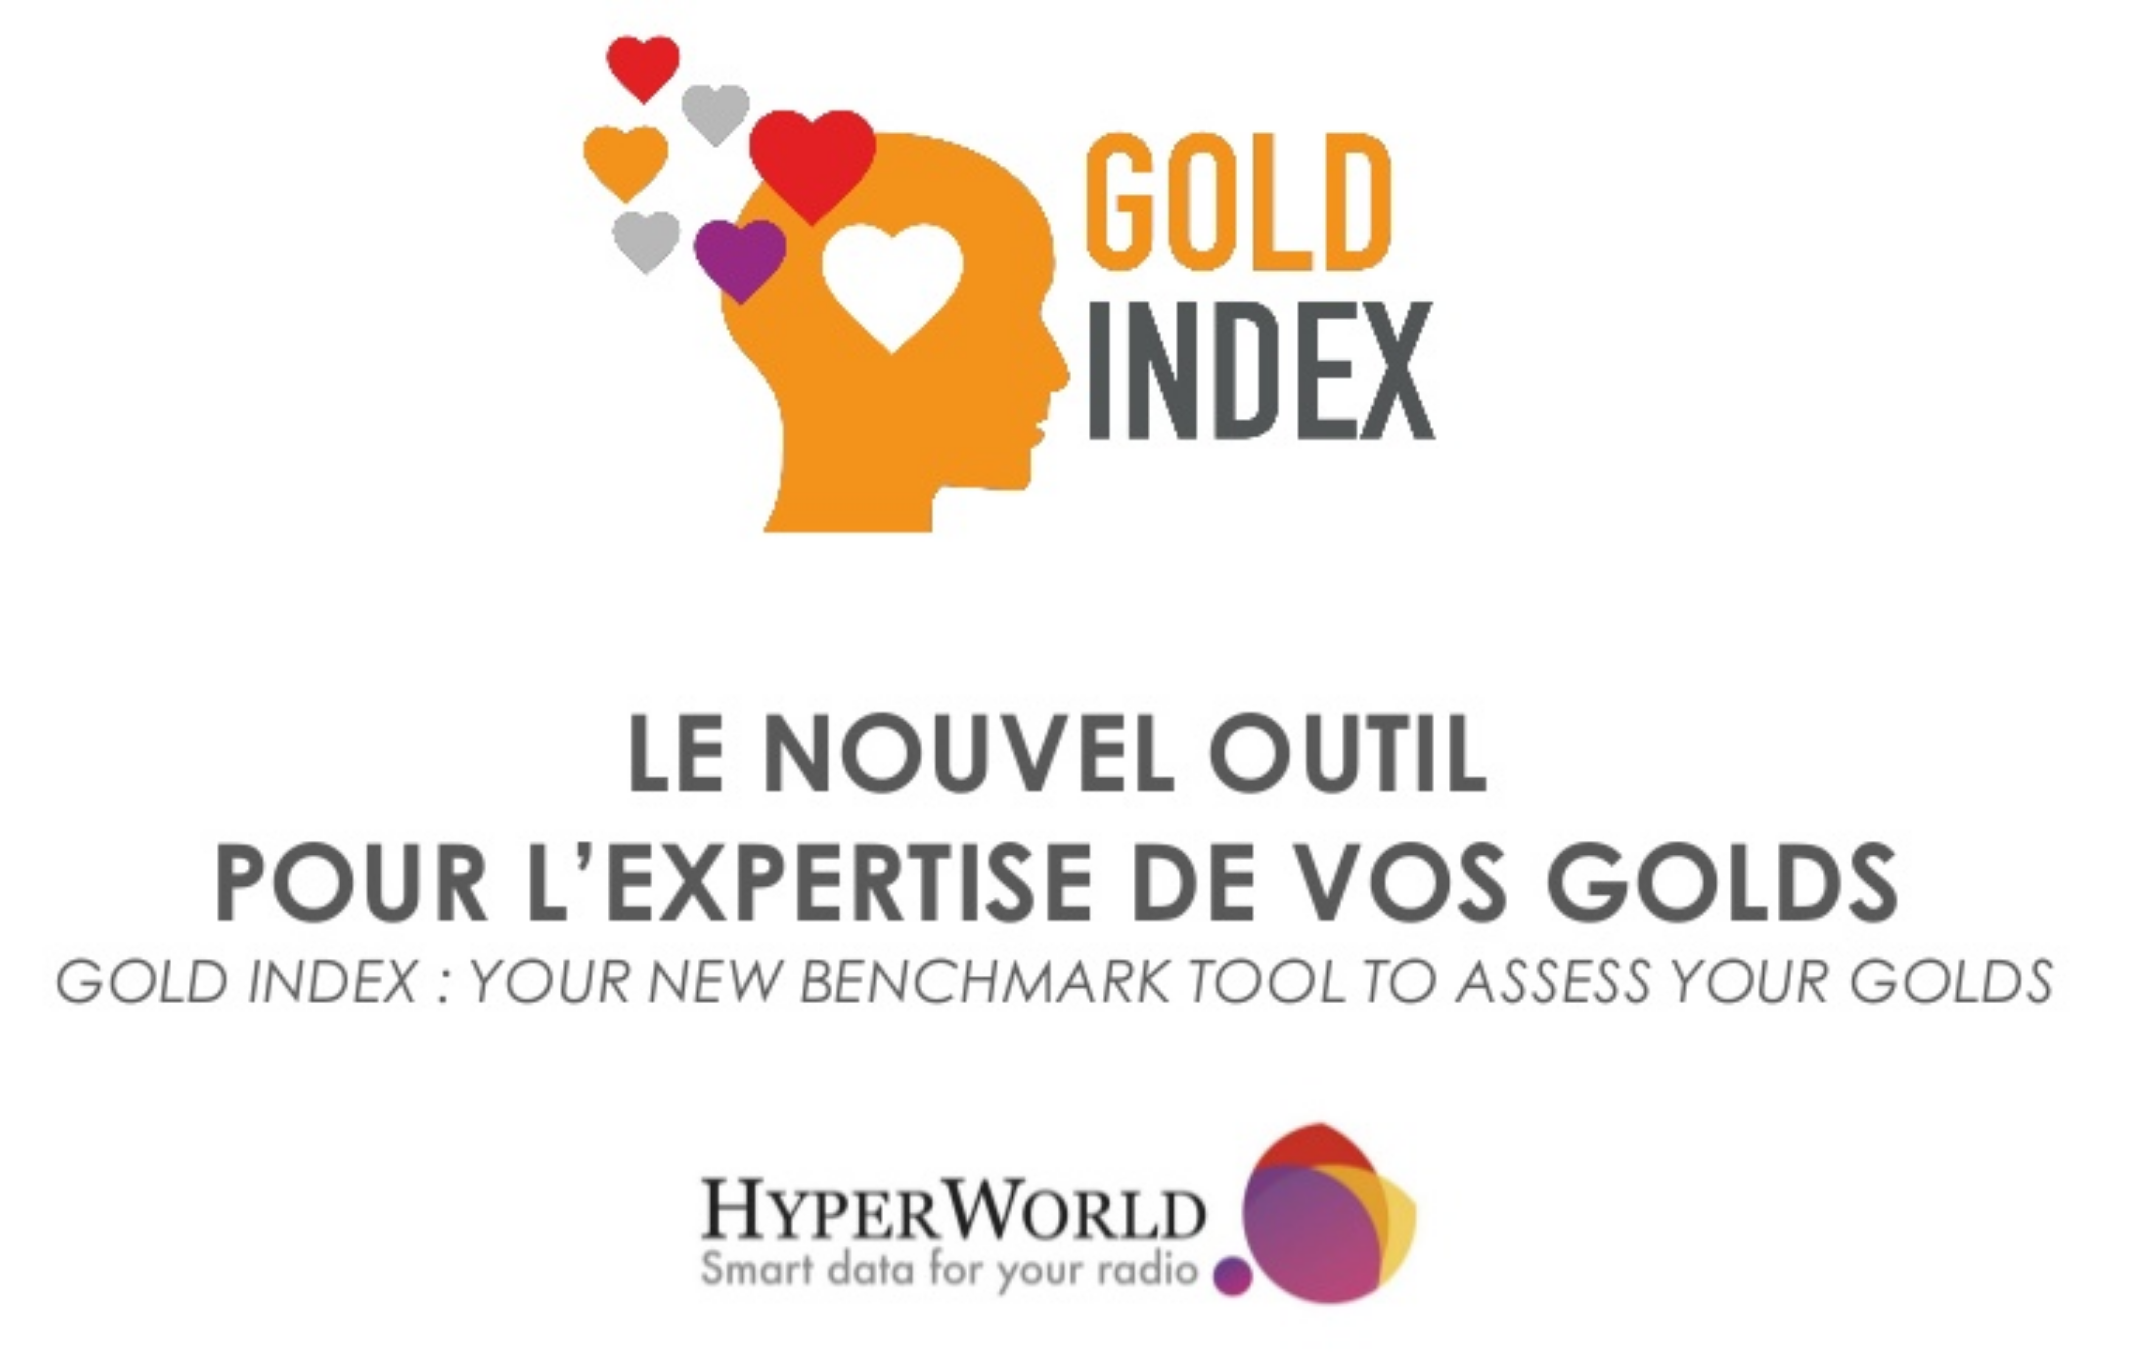 Hyperworld lance l'outil Gold Index